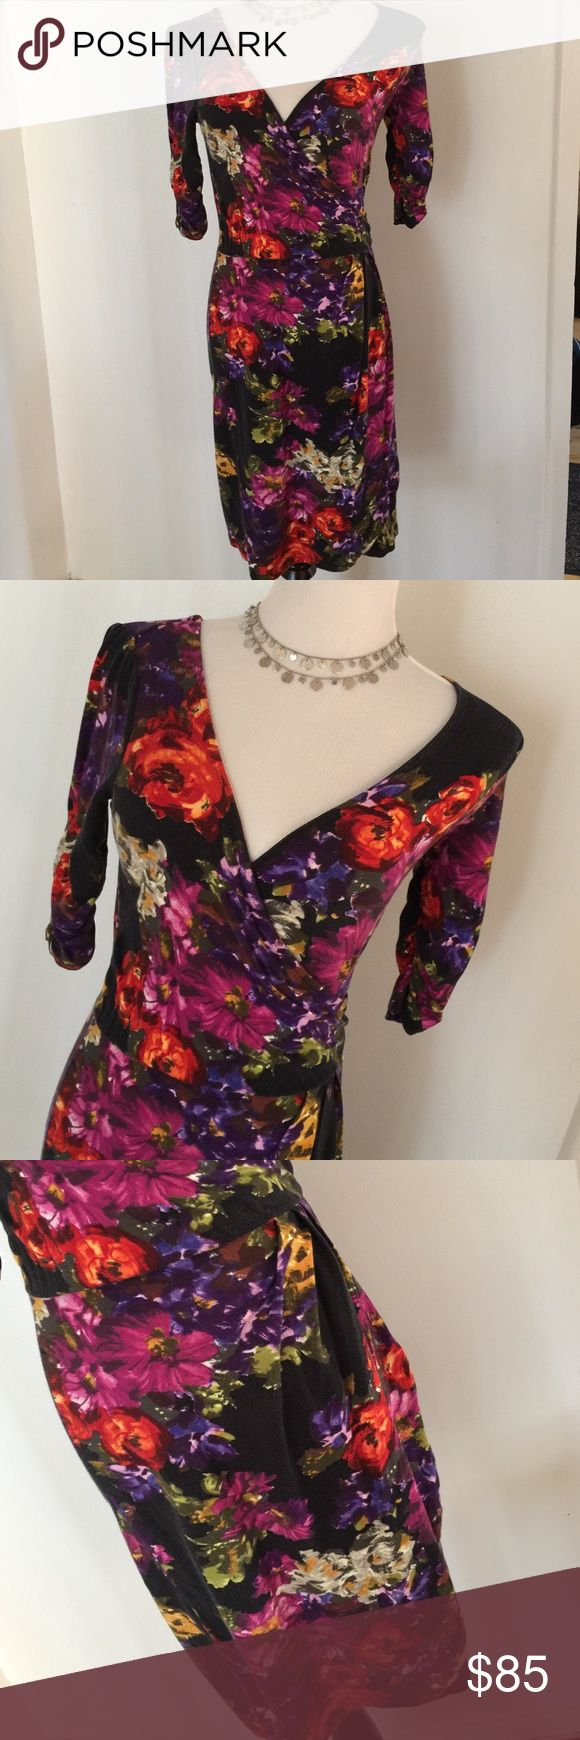 THREEDOTS STUNNING FLORAL DRESS EUC! Vibrant floral pattern on this v-neck dress with 3/4 rouched sleeves. Photos un-enhanced. Waist is rouched for figure flattering look. This is a stunner! 96% viscose 4% spandex. Machine wash cold Line dry. Easy maintenance. Make a statement! Any questions please ask! ✅OFFERS ACCEPTED. Thanks for browsing! Marian Three Dots Dresses